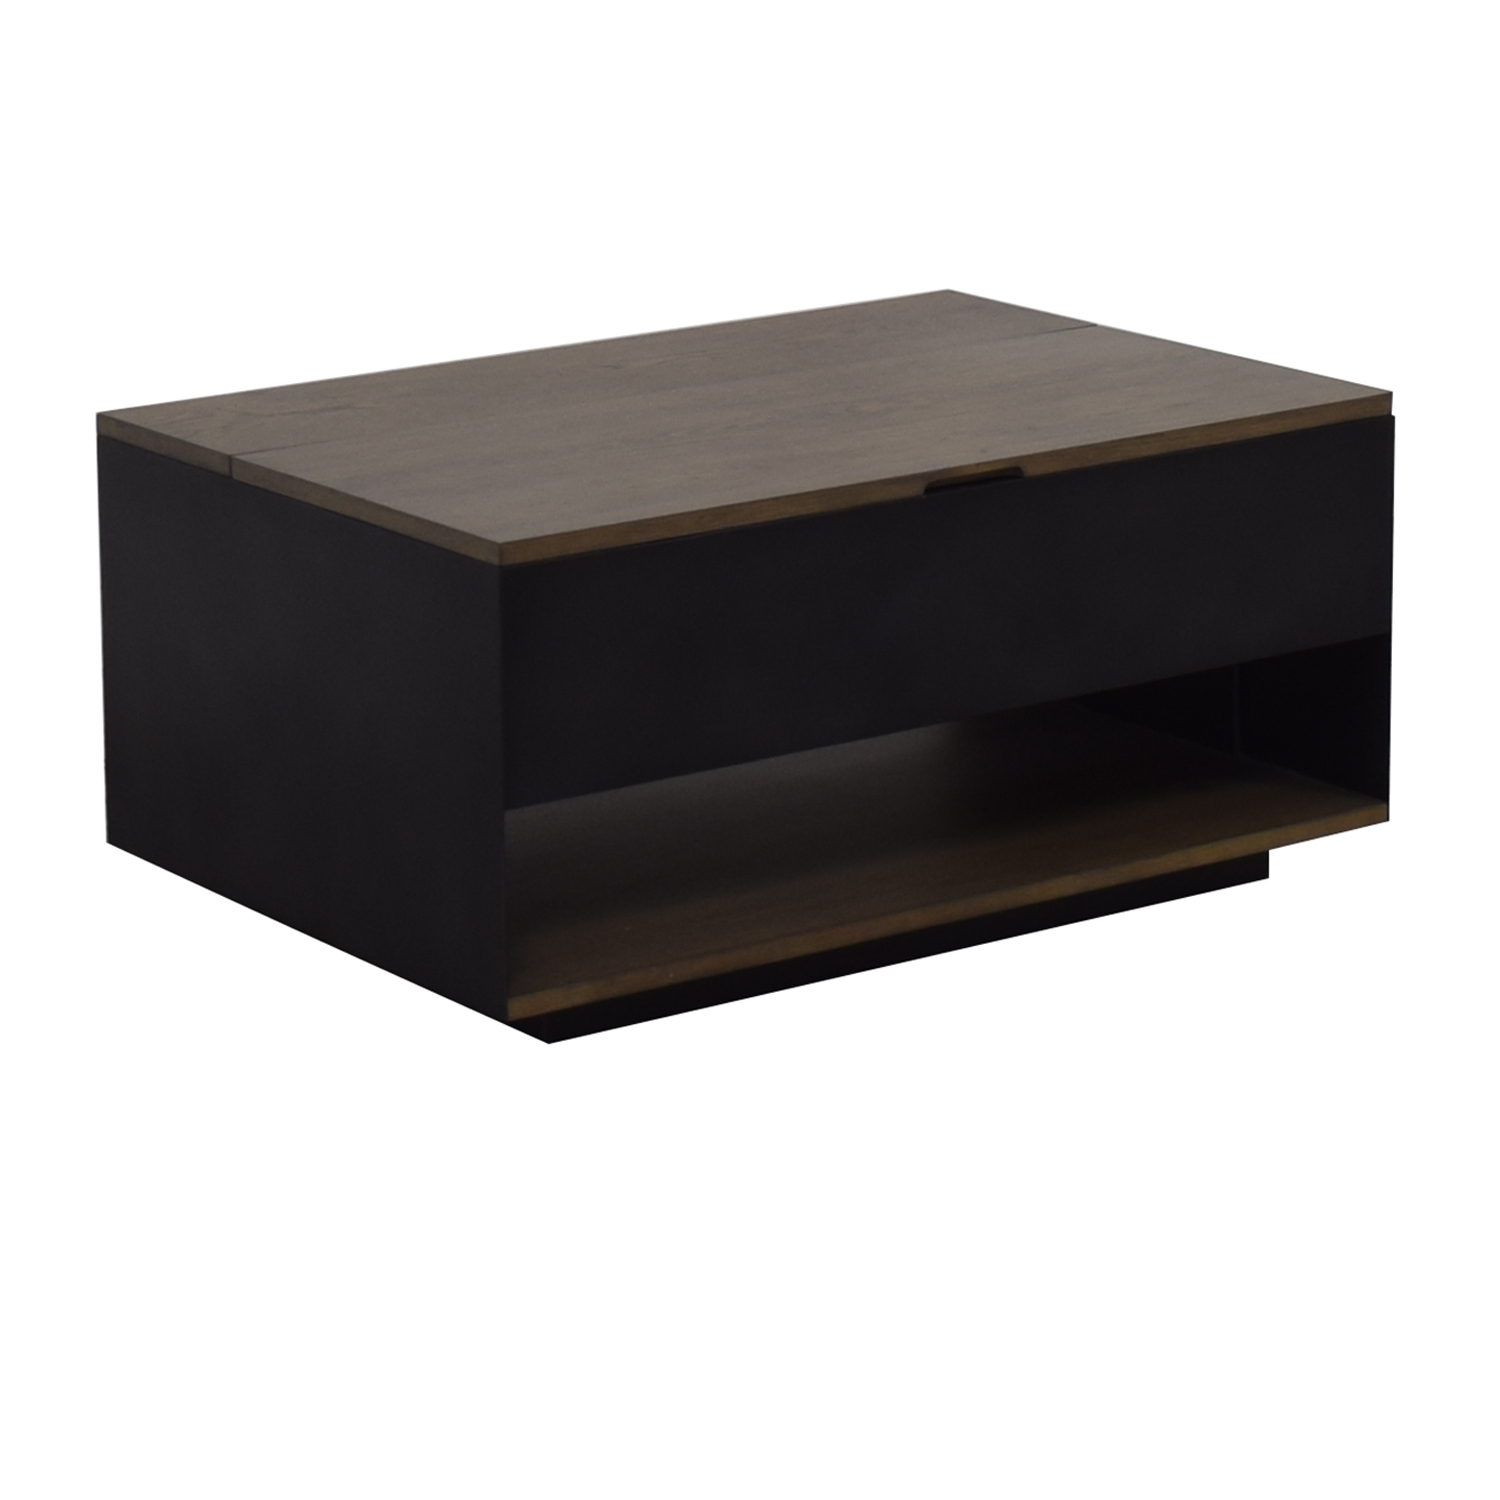 West Elm Massaro Pop Up Coffee Table / Coffee Tables